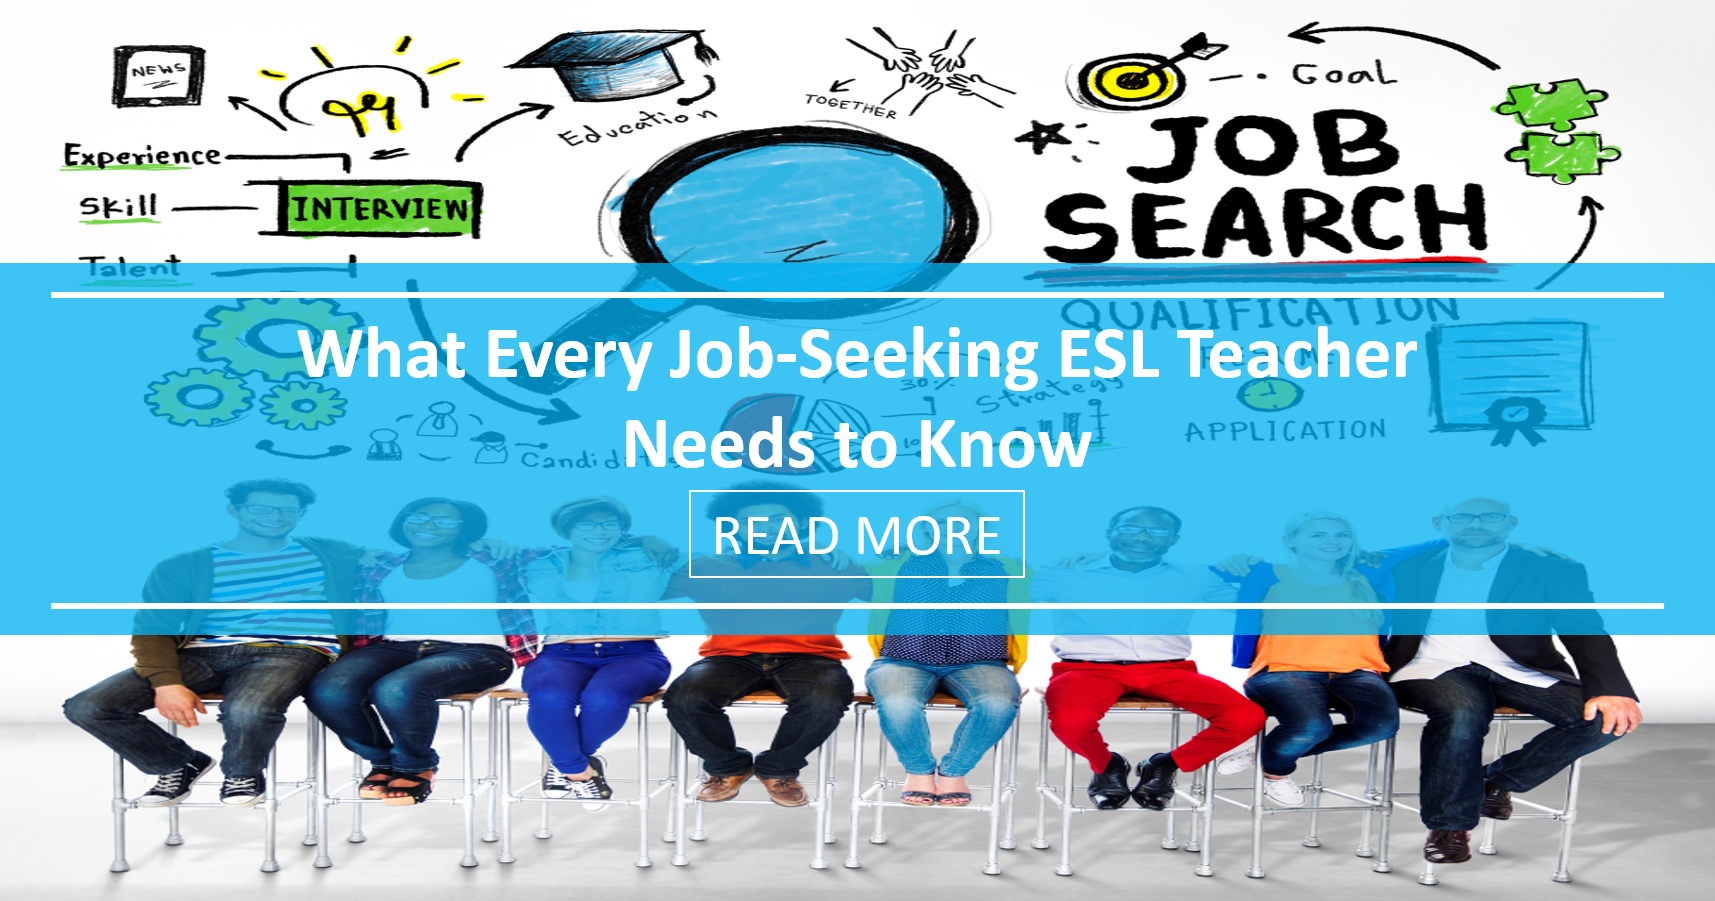 What Every Job-Seeking ESL Teacher Needs to Know